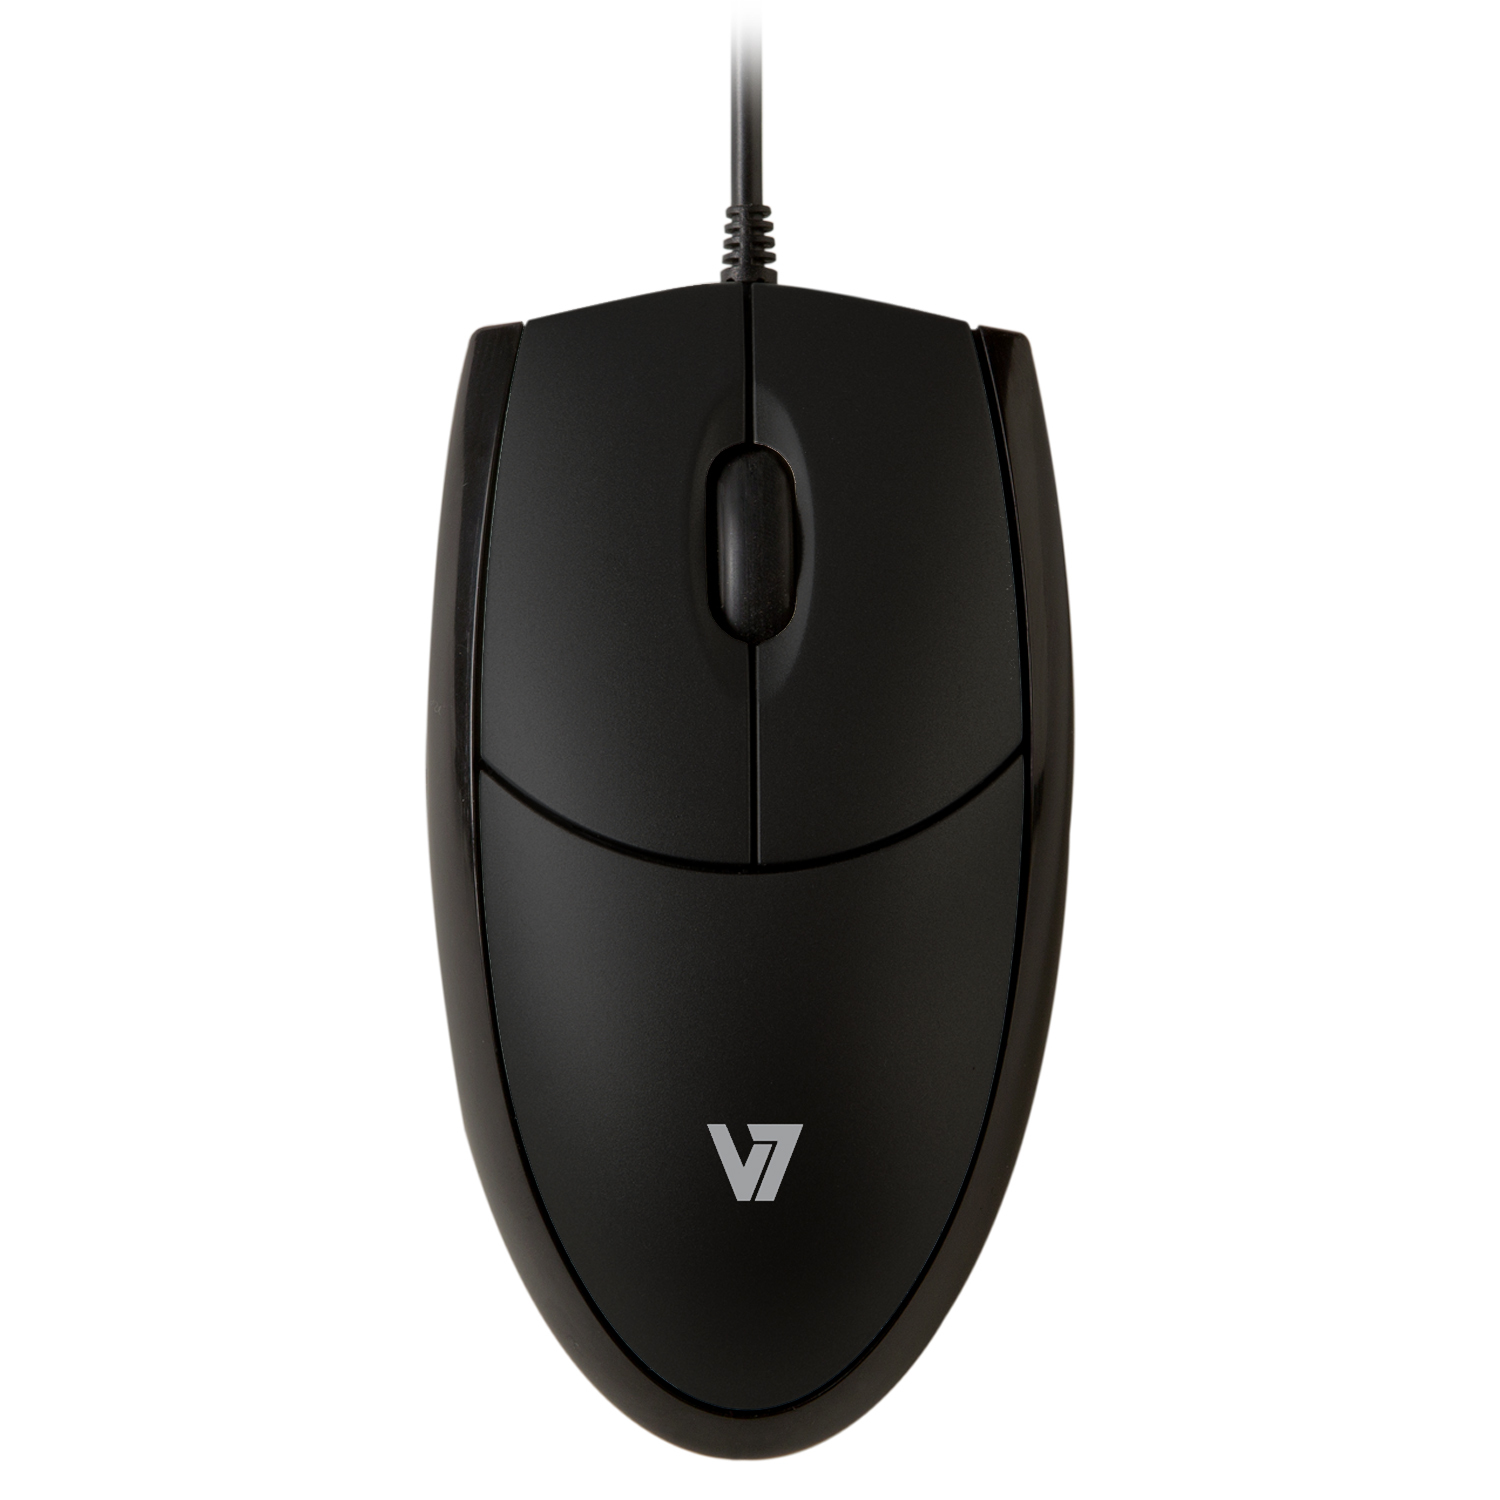 Mv3000010-blk-5e V7 V7 Mouse Optical All Black          Usb 3 Button Wheel Mouse 1000dpi